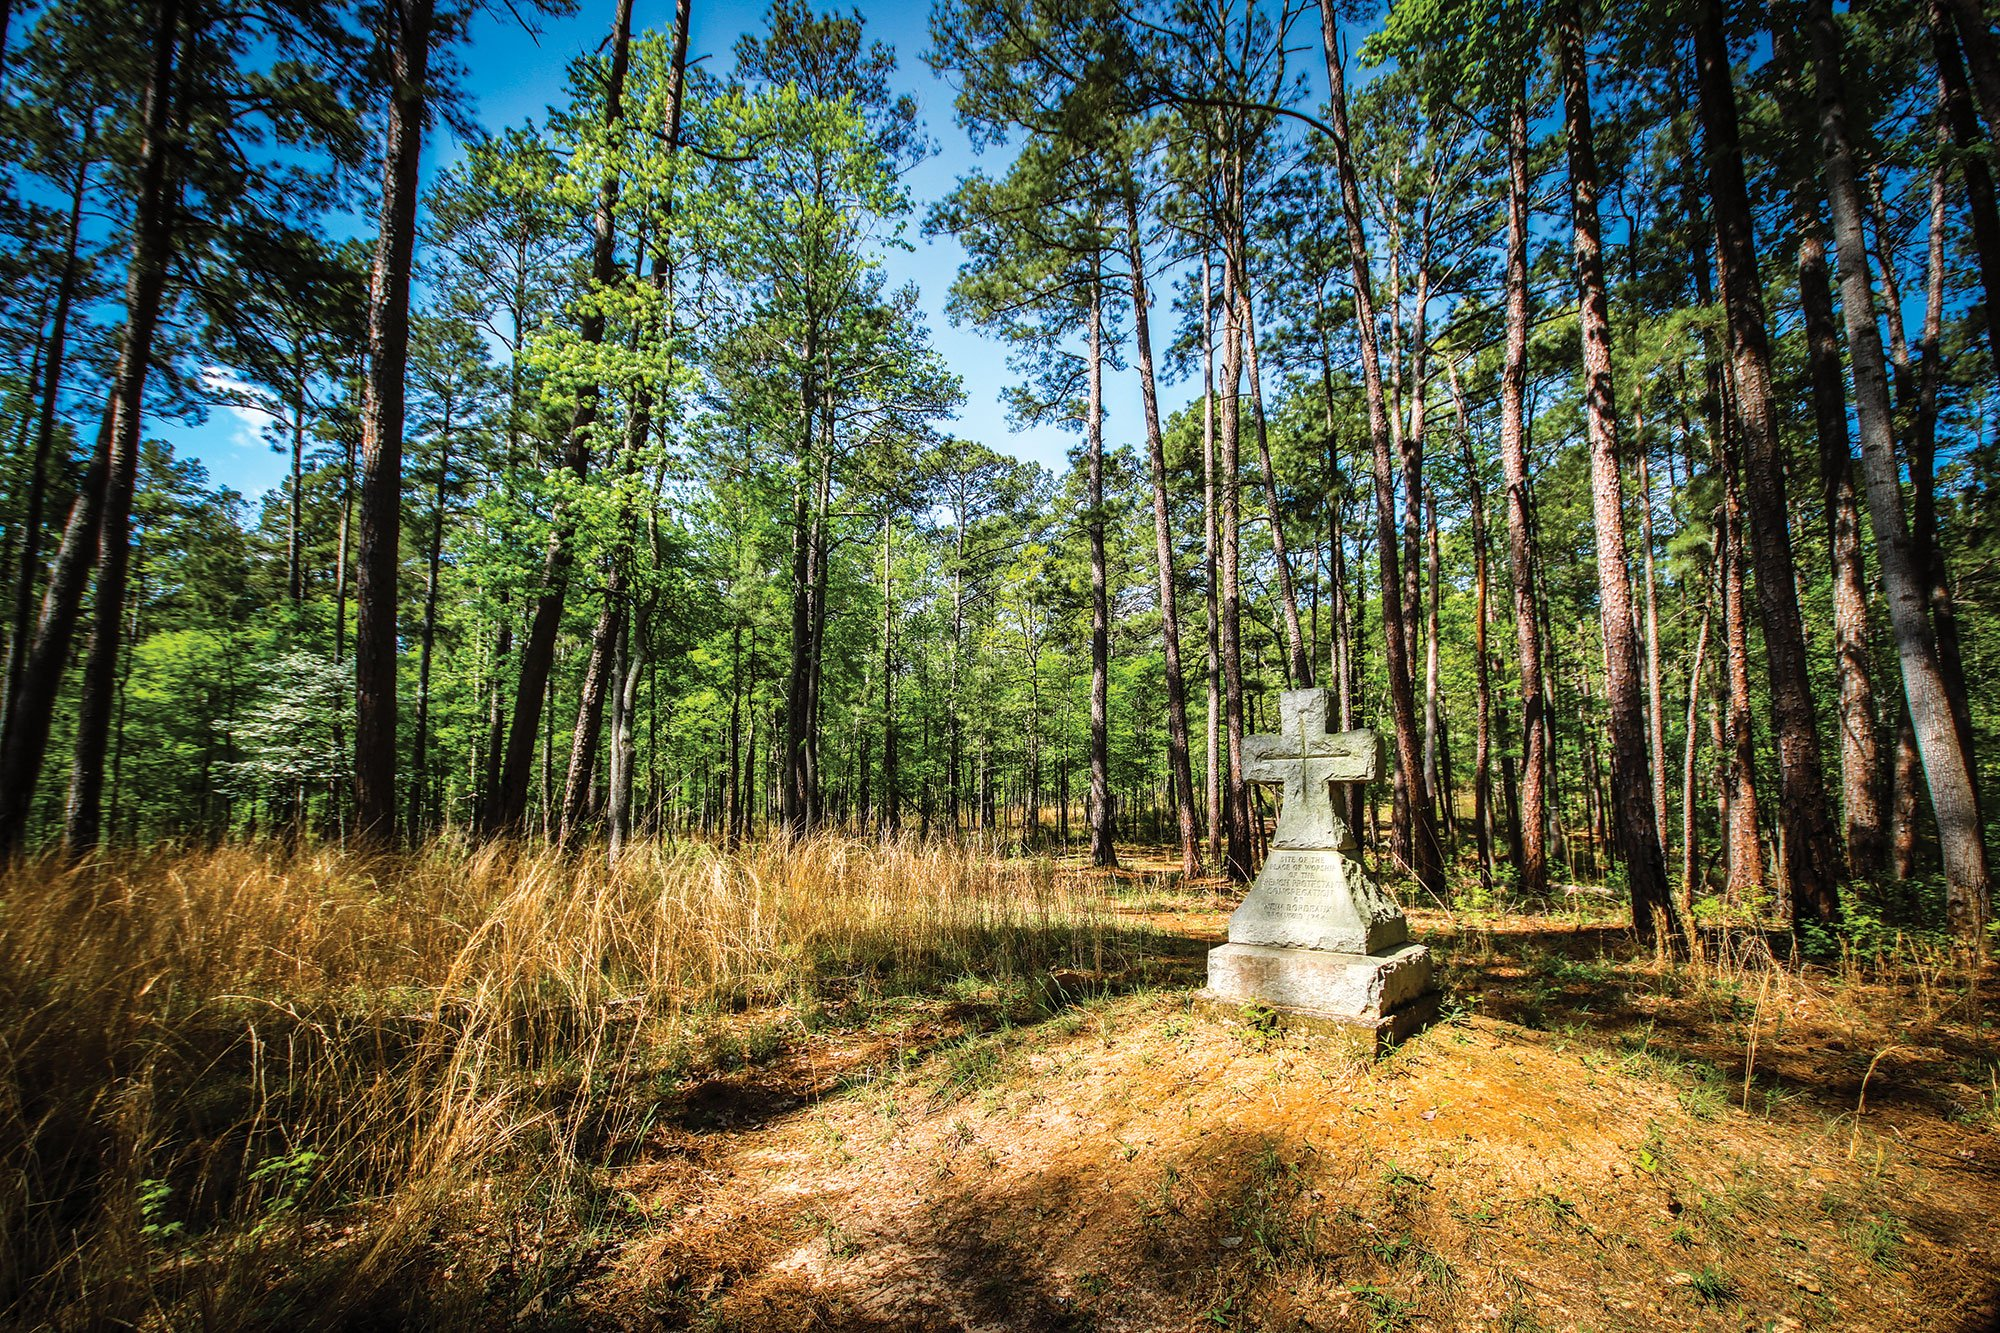 Things To See Near SLV: Huguenot Place of Worship